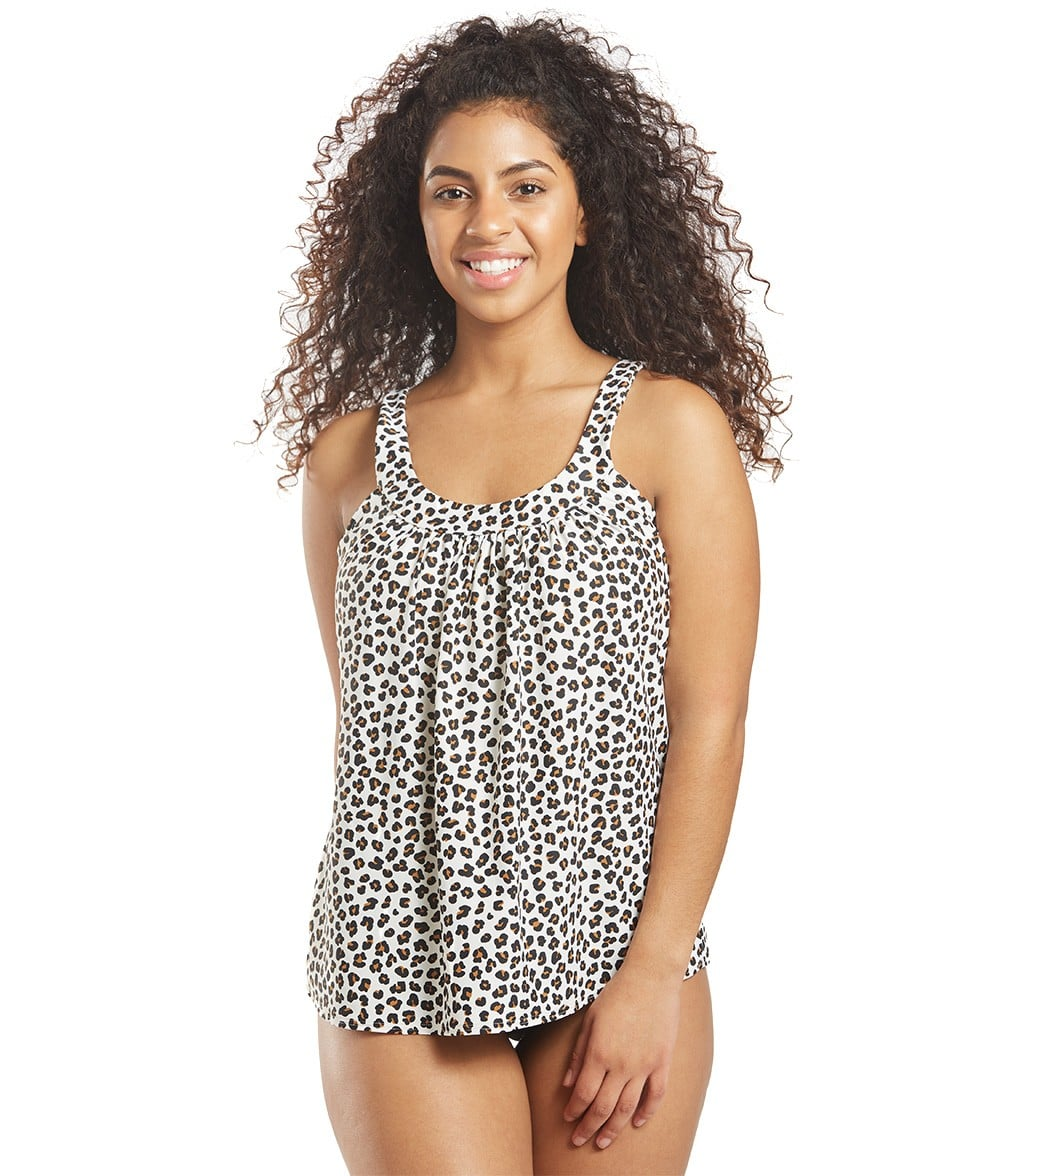 Coco Reef Cheetah Ultra Fit Underwire Tankini Top C-F Cup D-Cup